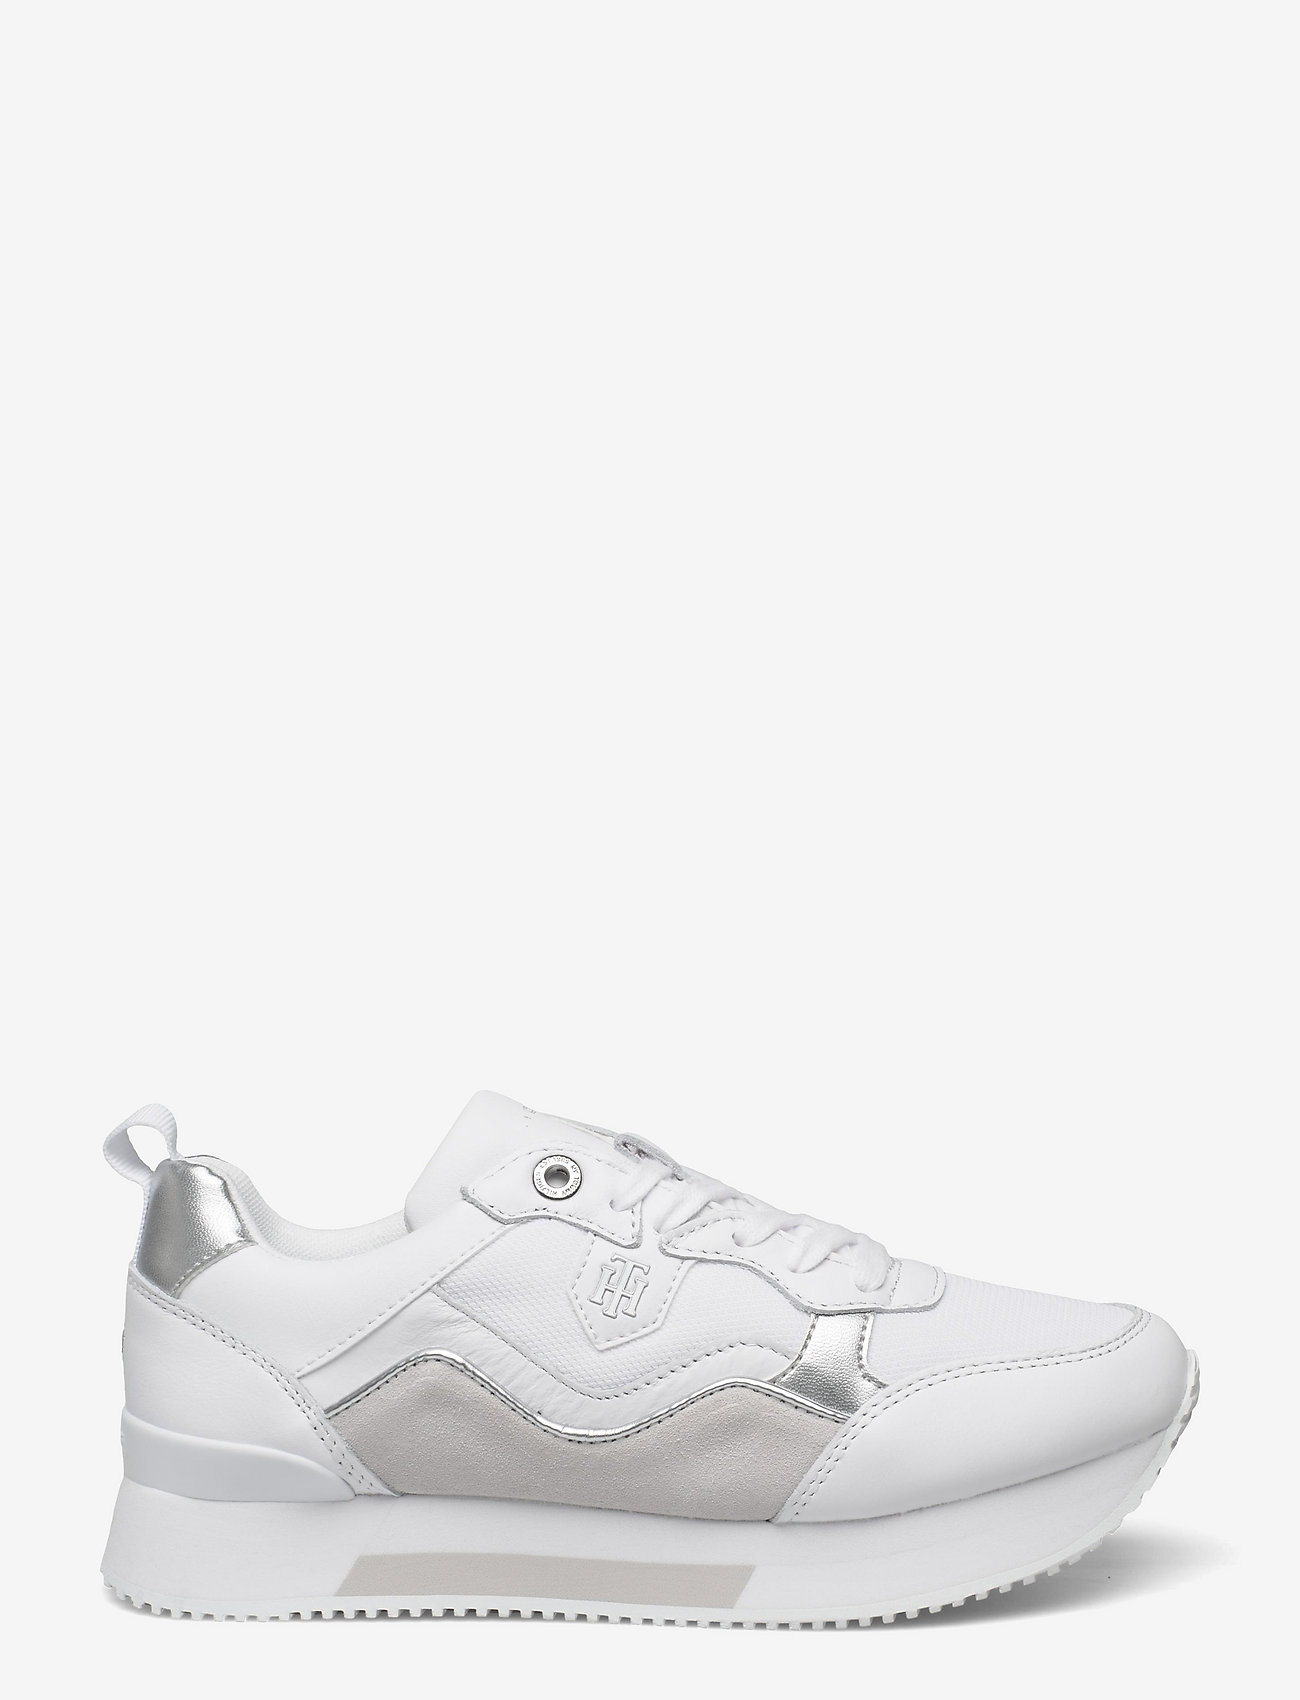 Tommy Hilfiger - MATERIAL MIX ACTIVE CITY SNEAKER - low top sneakers - white - 1